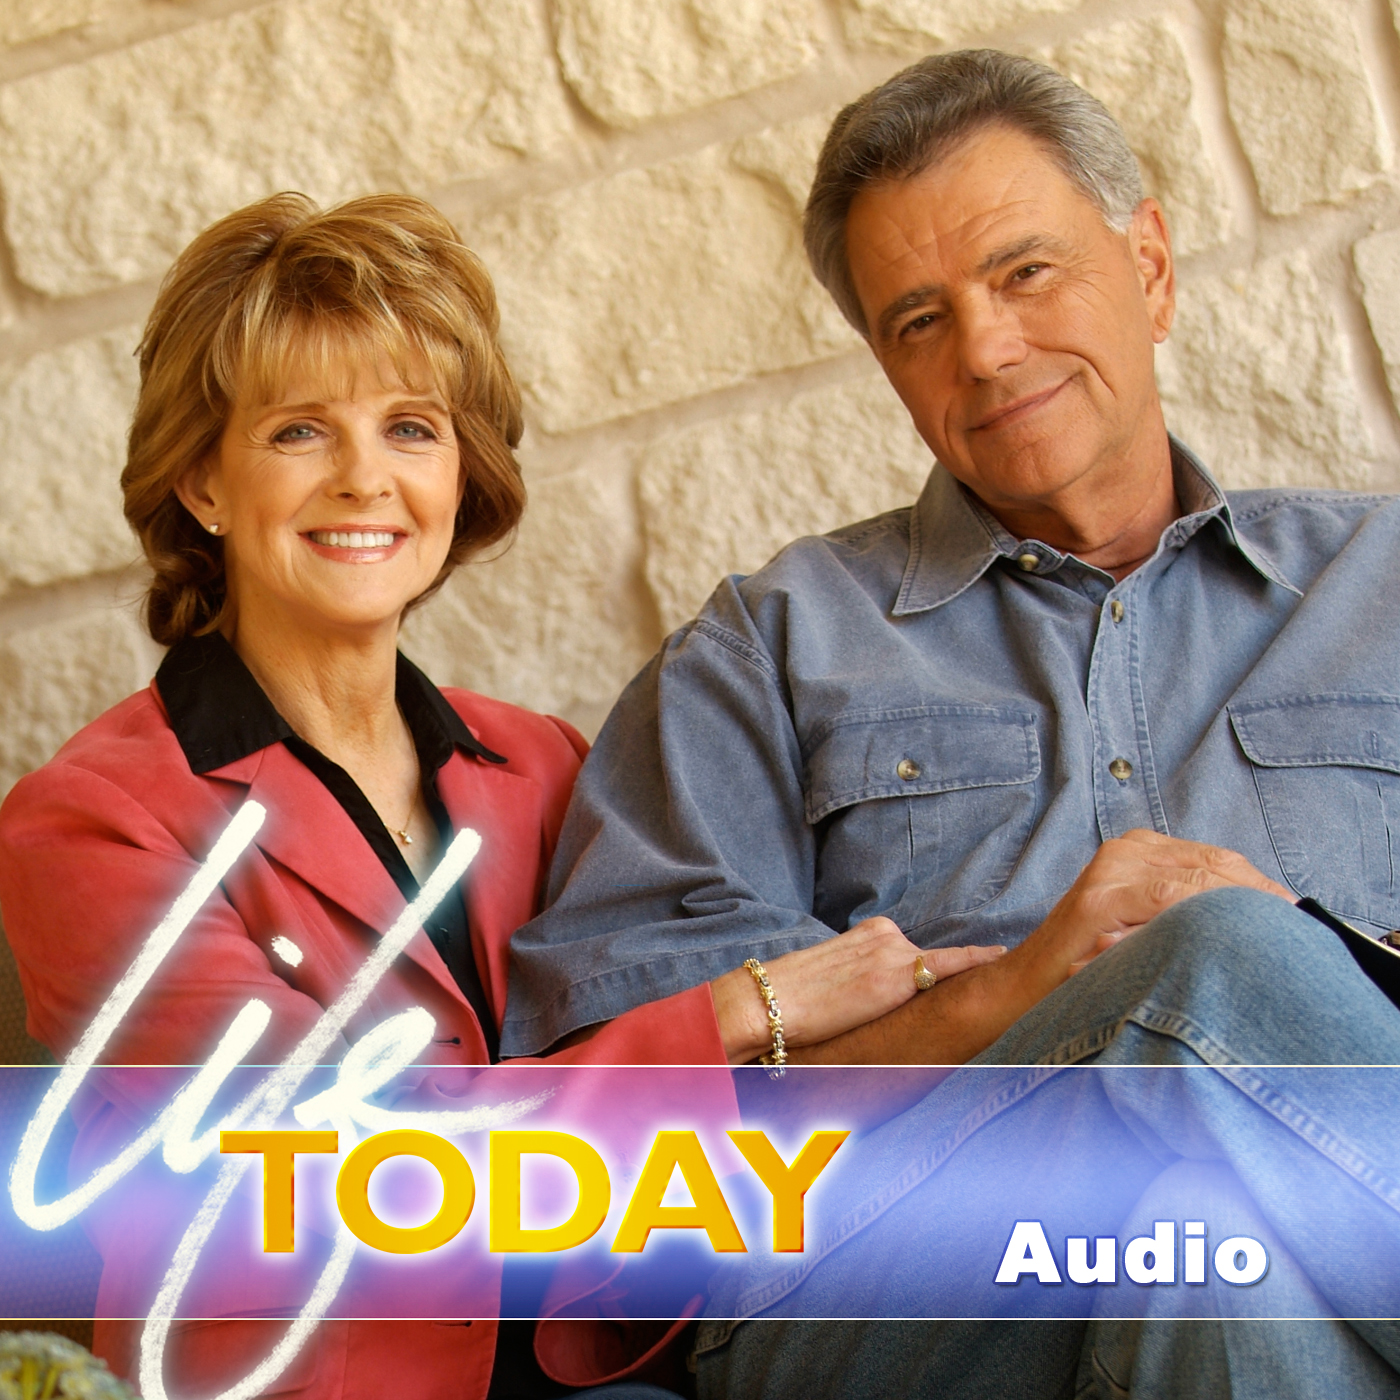 Life Today Audio